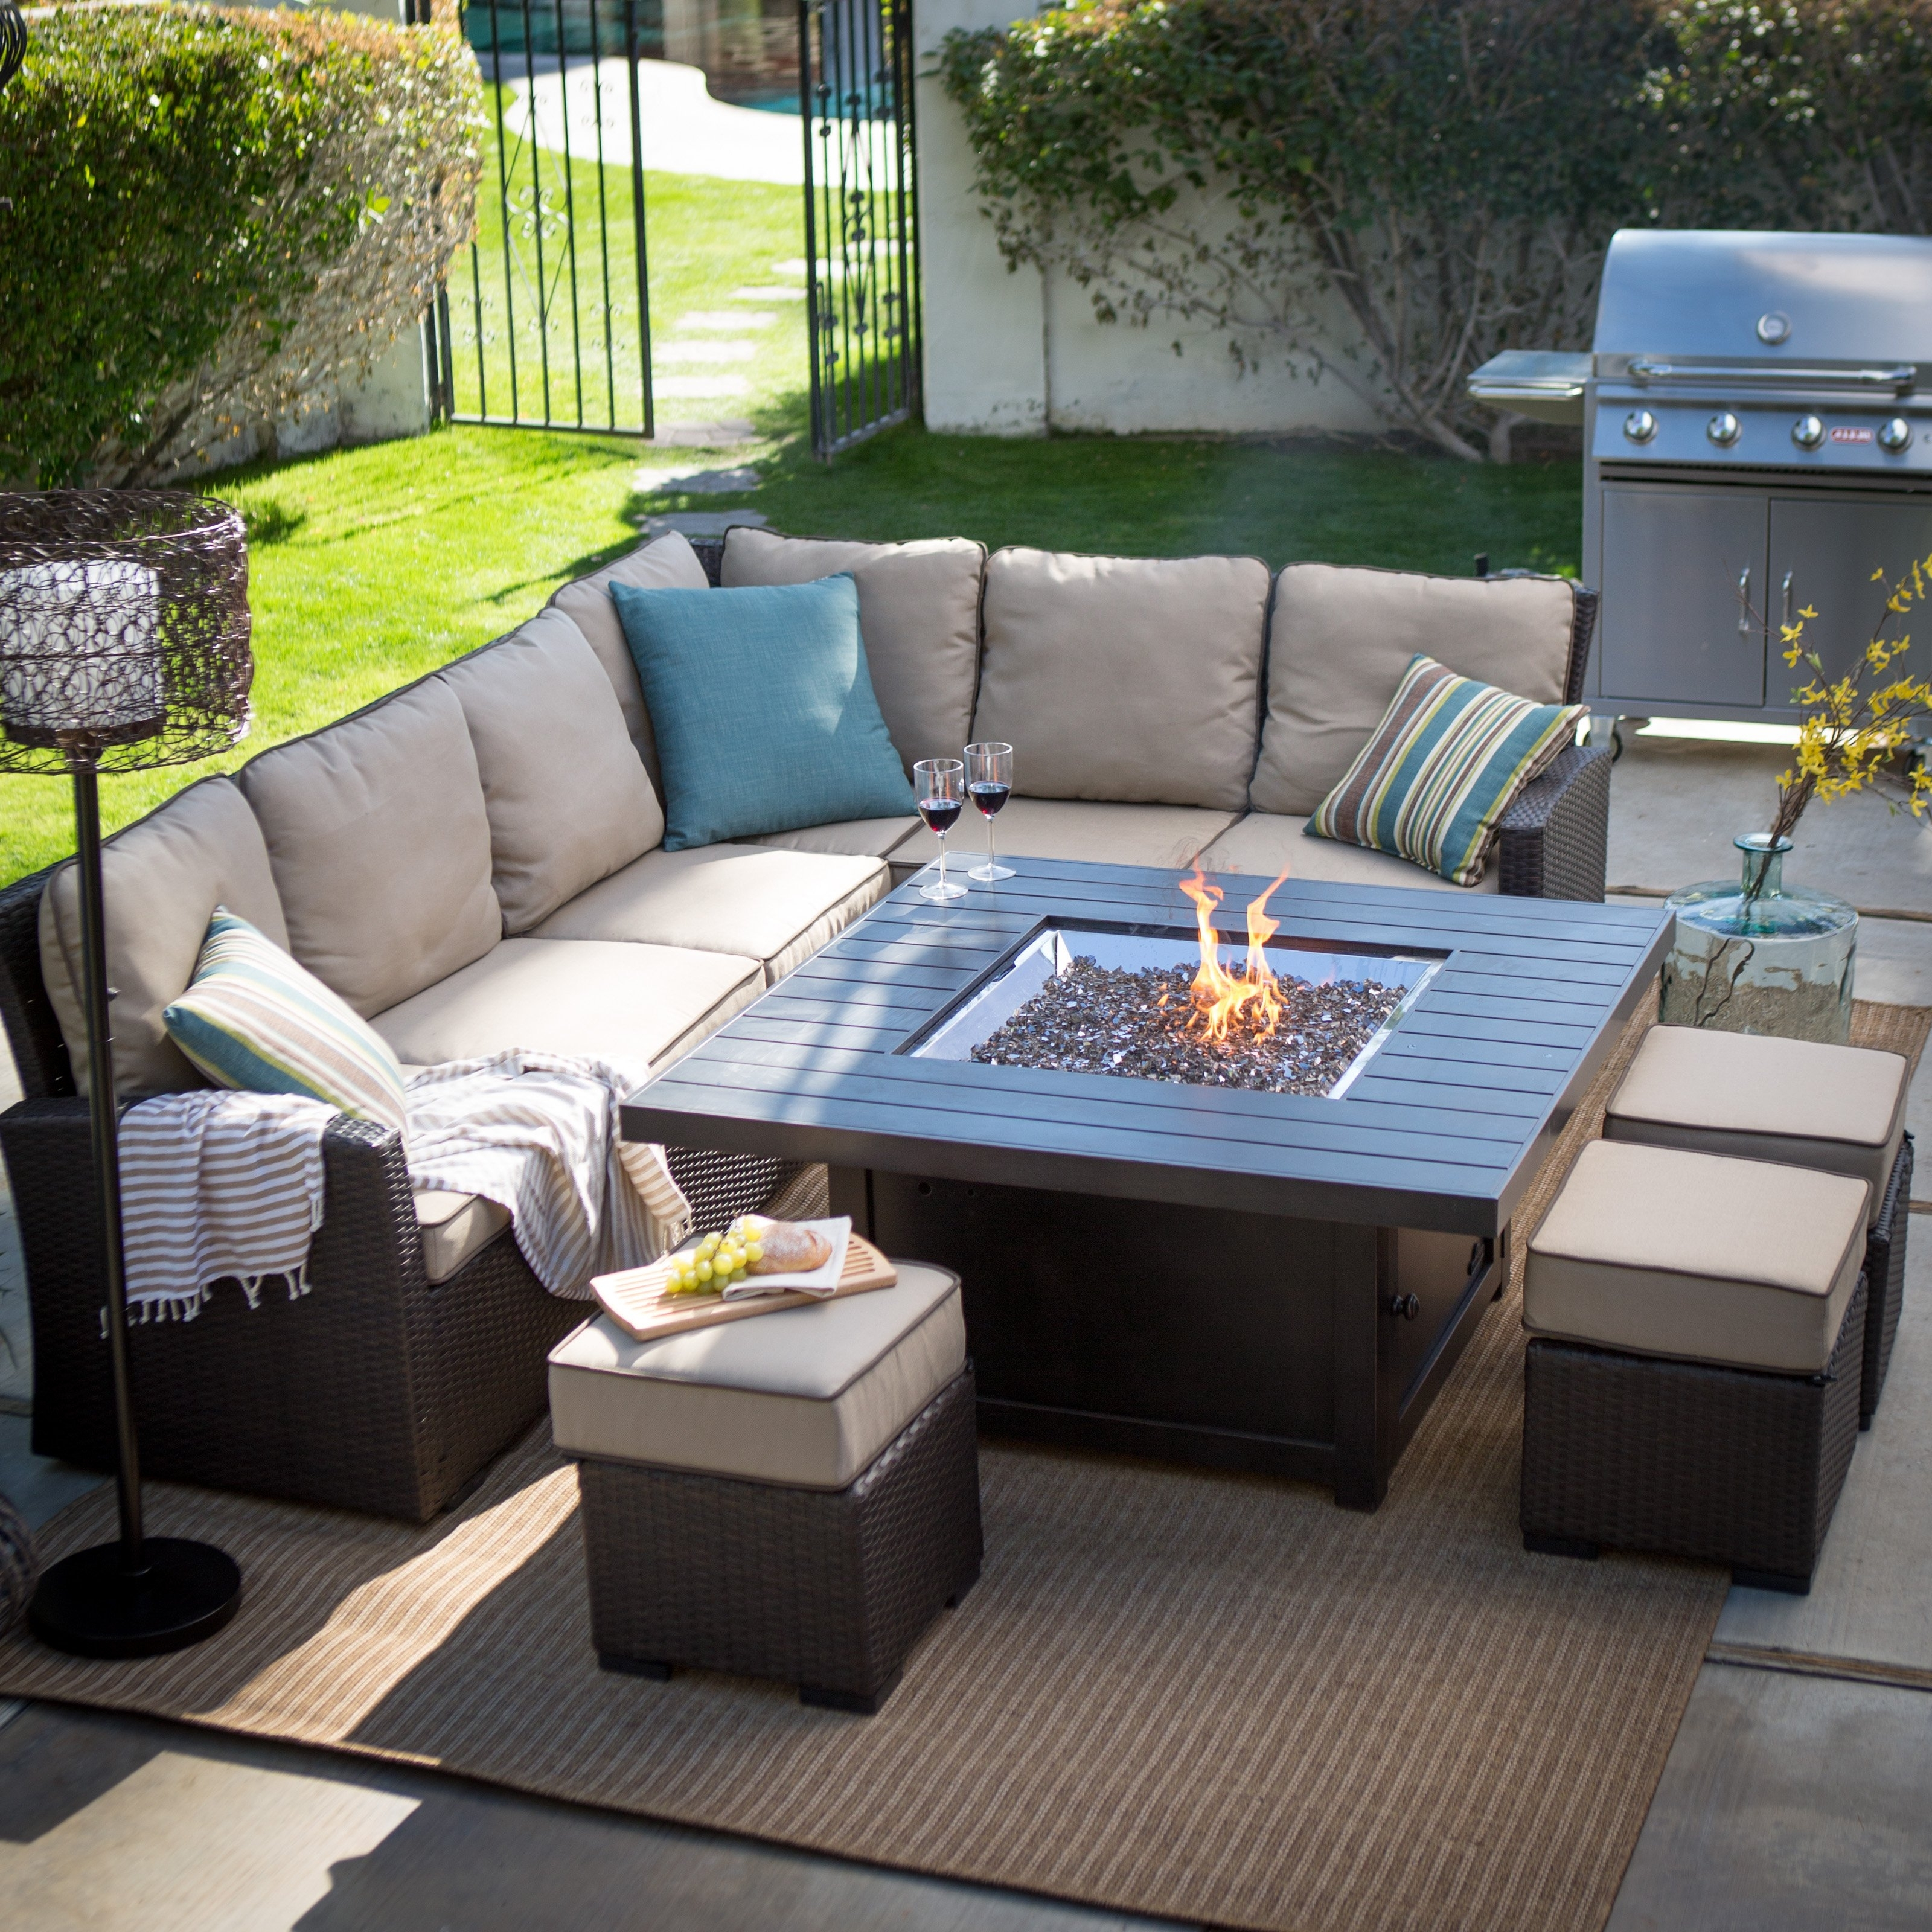 Fashionable Conversation Patio Sets With Outdoor Sectionals Pertaining To Belham Living Monticello Fire Pit Chat Set (View 10 of 20)